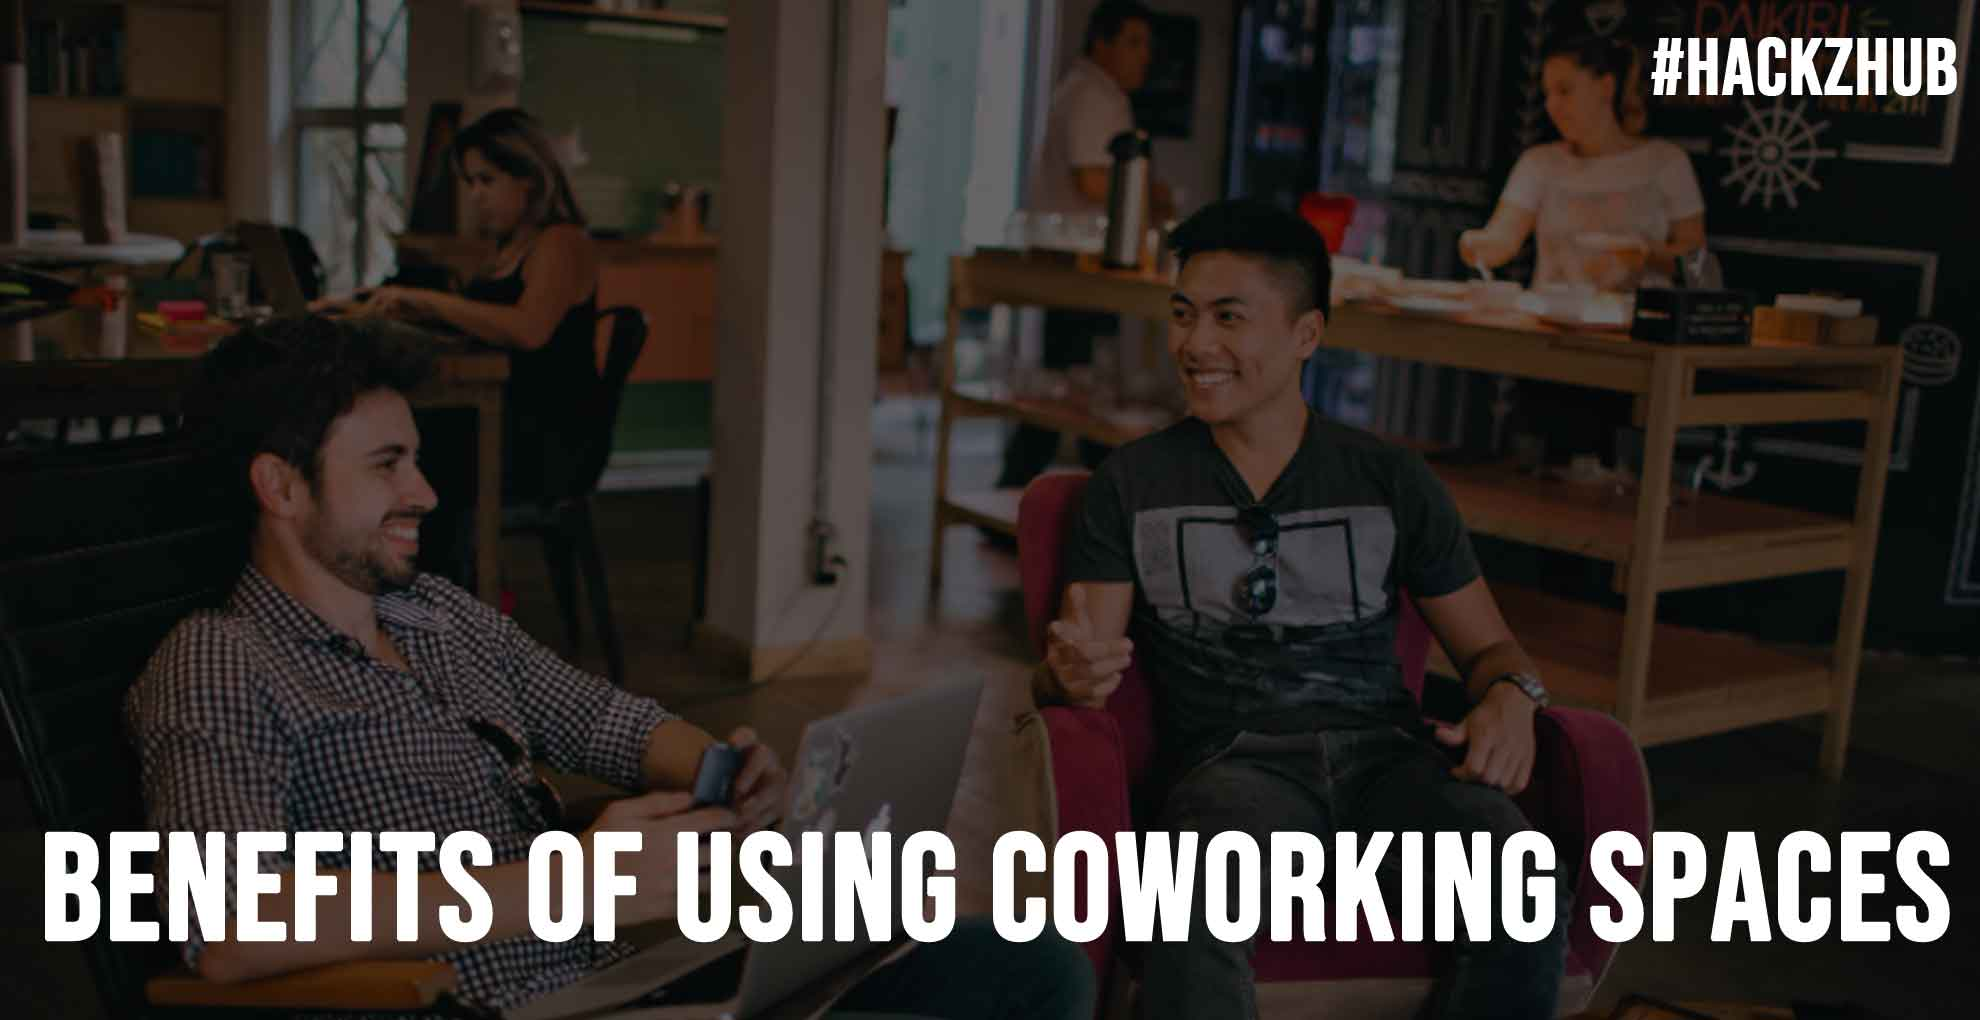 Benefits of Using Coworking Spaces